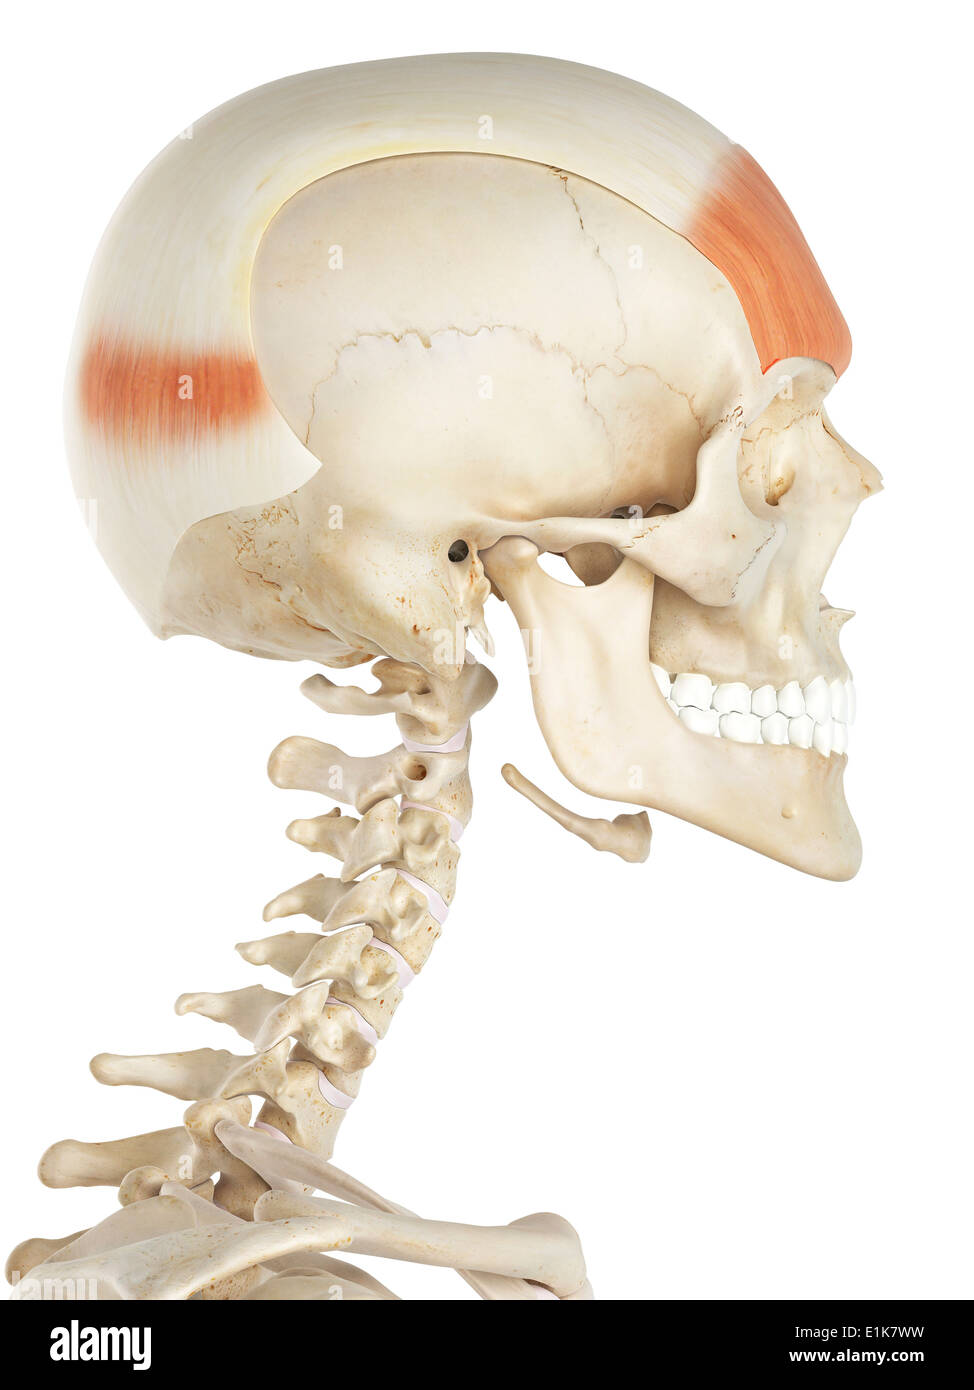 frontalis muscle stock photos frontalis muscle stock images alamy